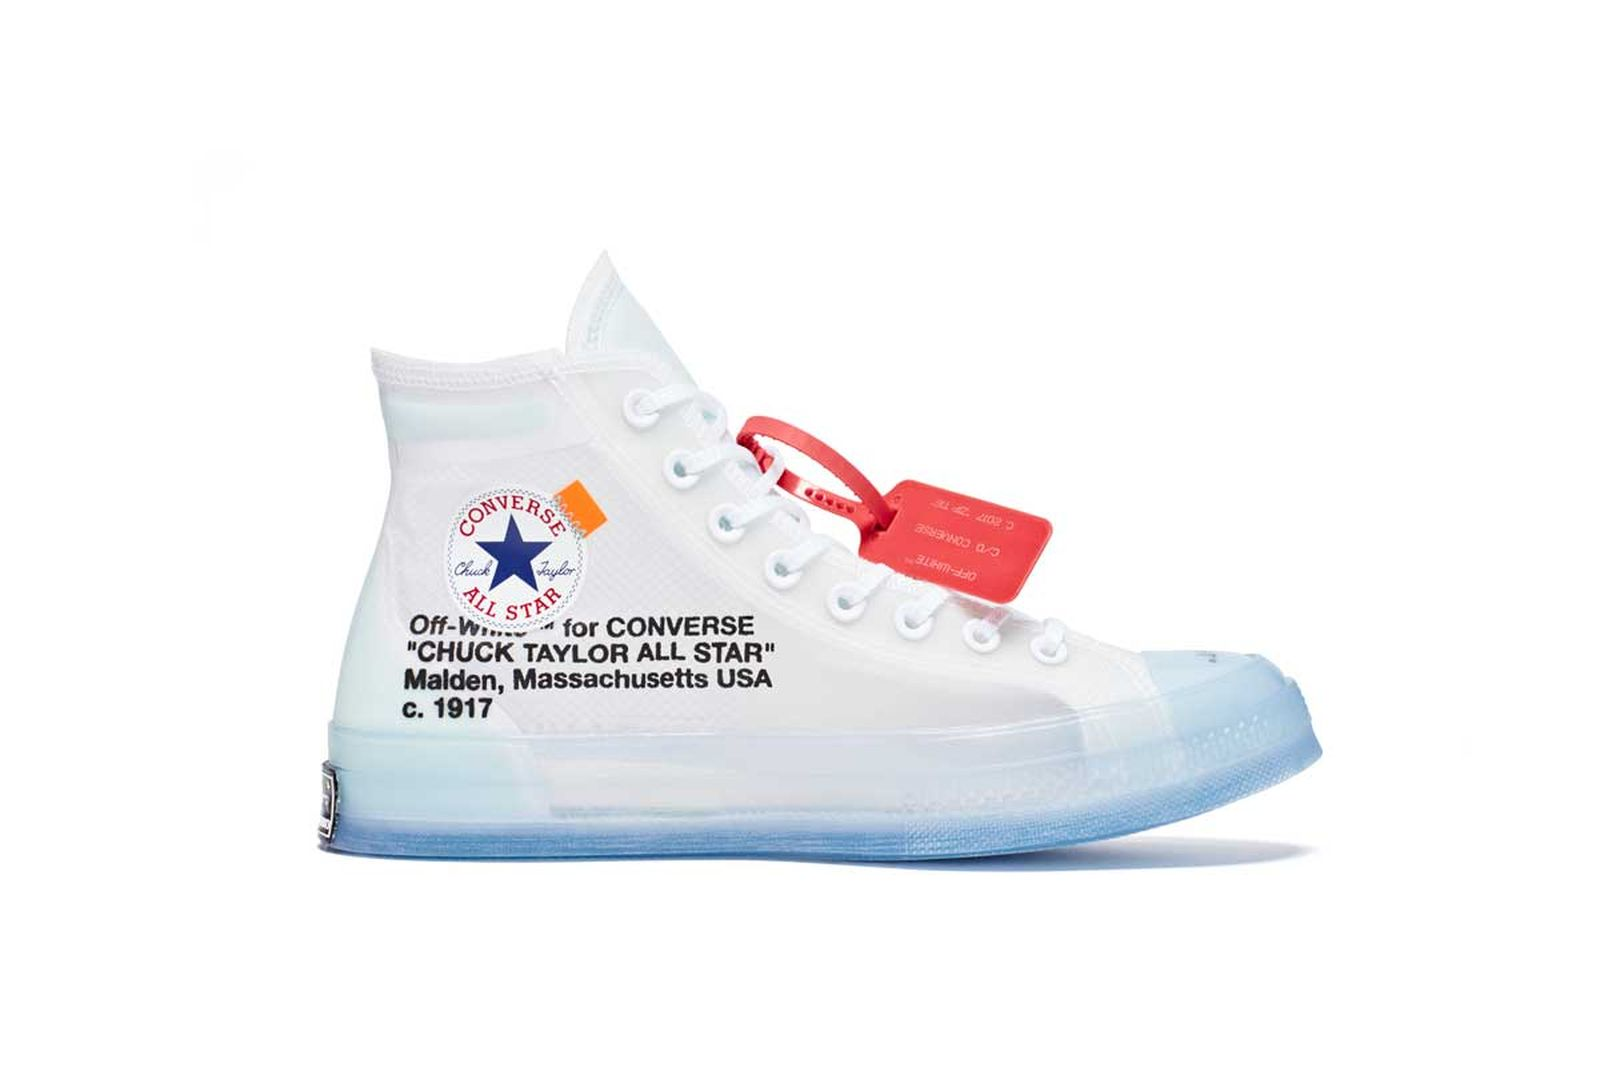 virgil-abloh-converse-all-star-release-date-price-2018-013